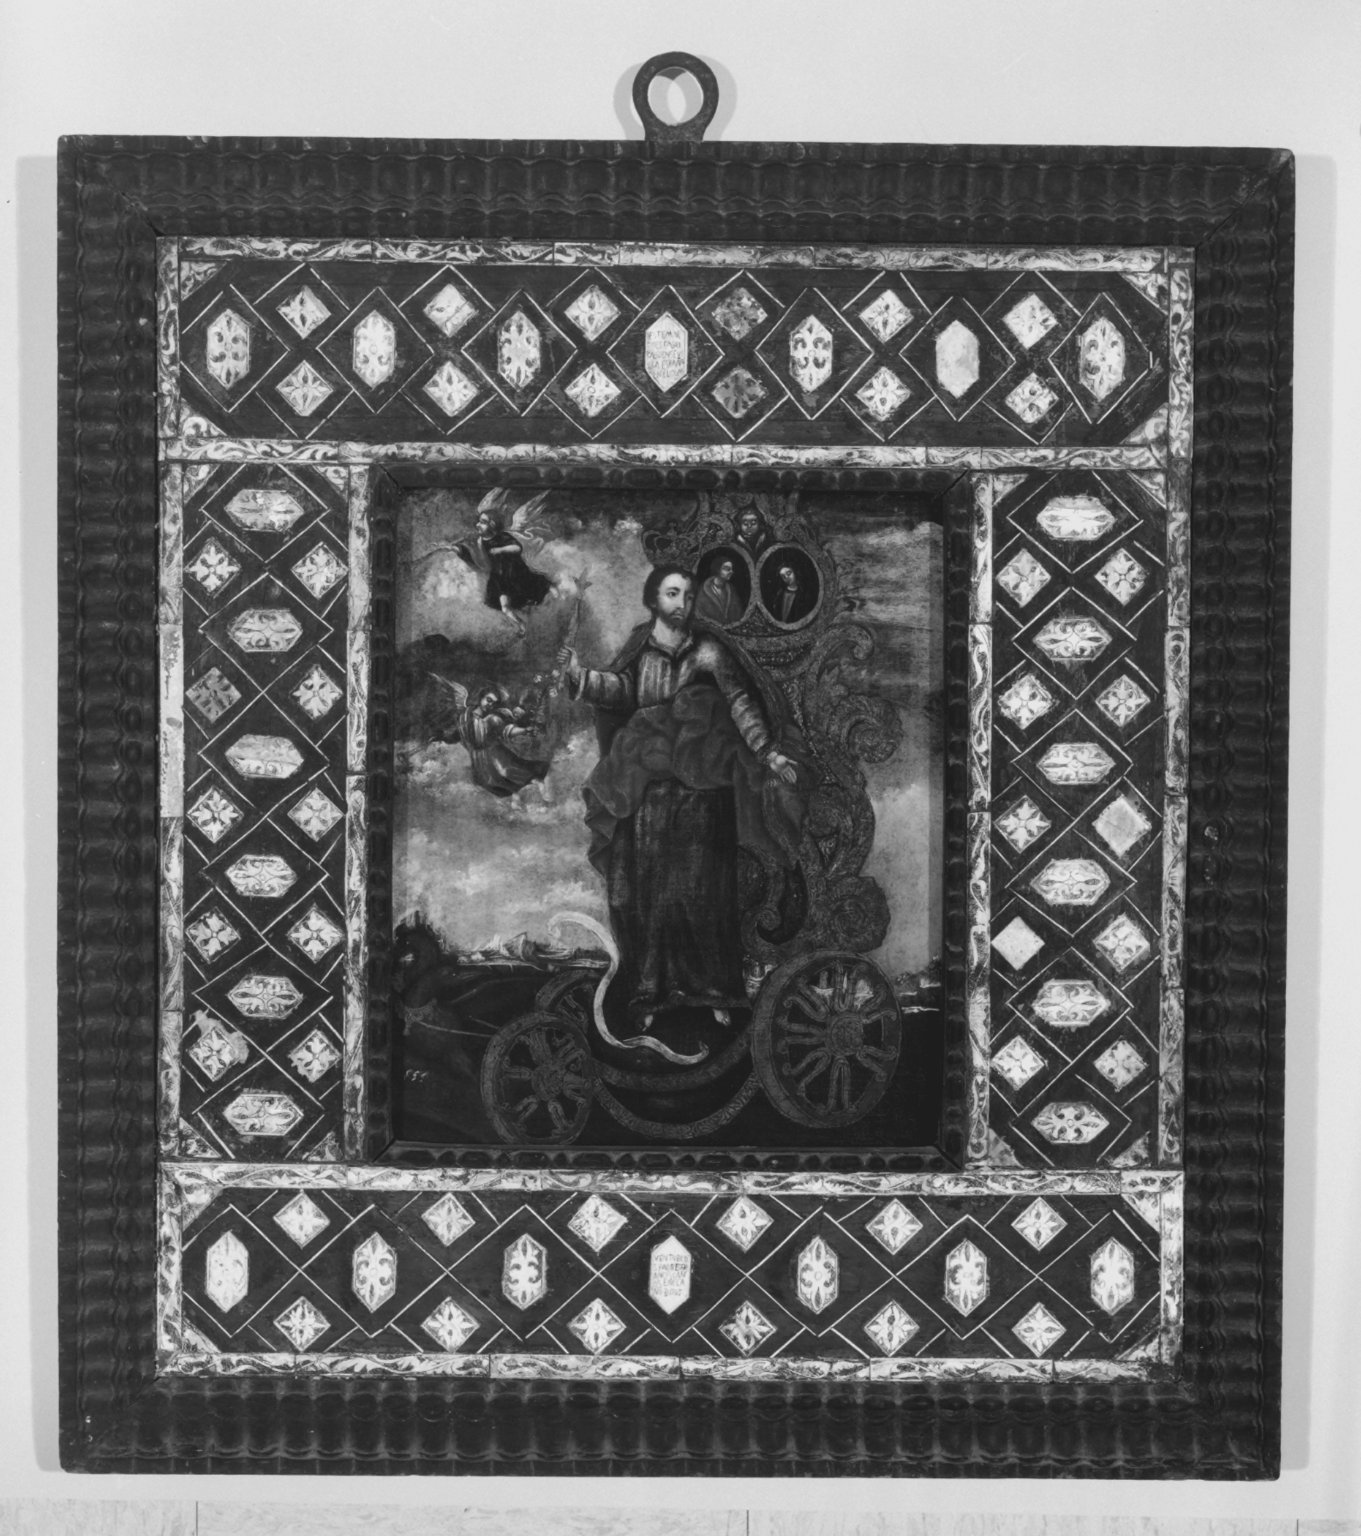 Brooklyn Museum: Triumph of Christ the King - Christ on a Chariot